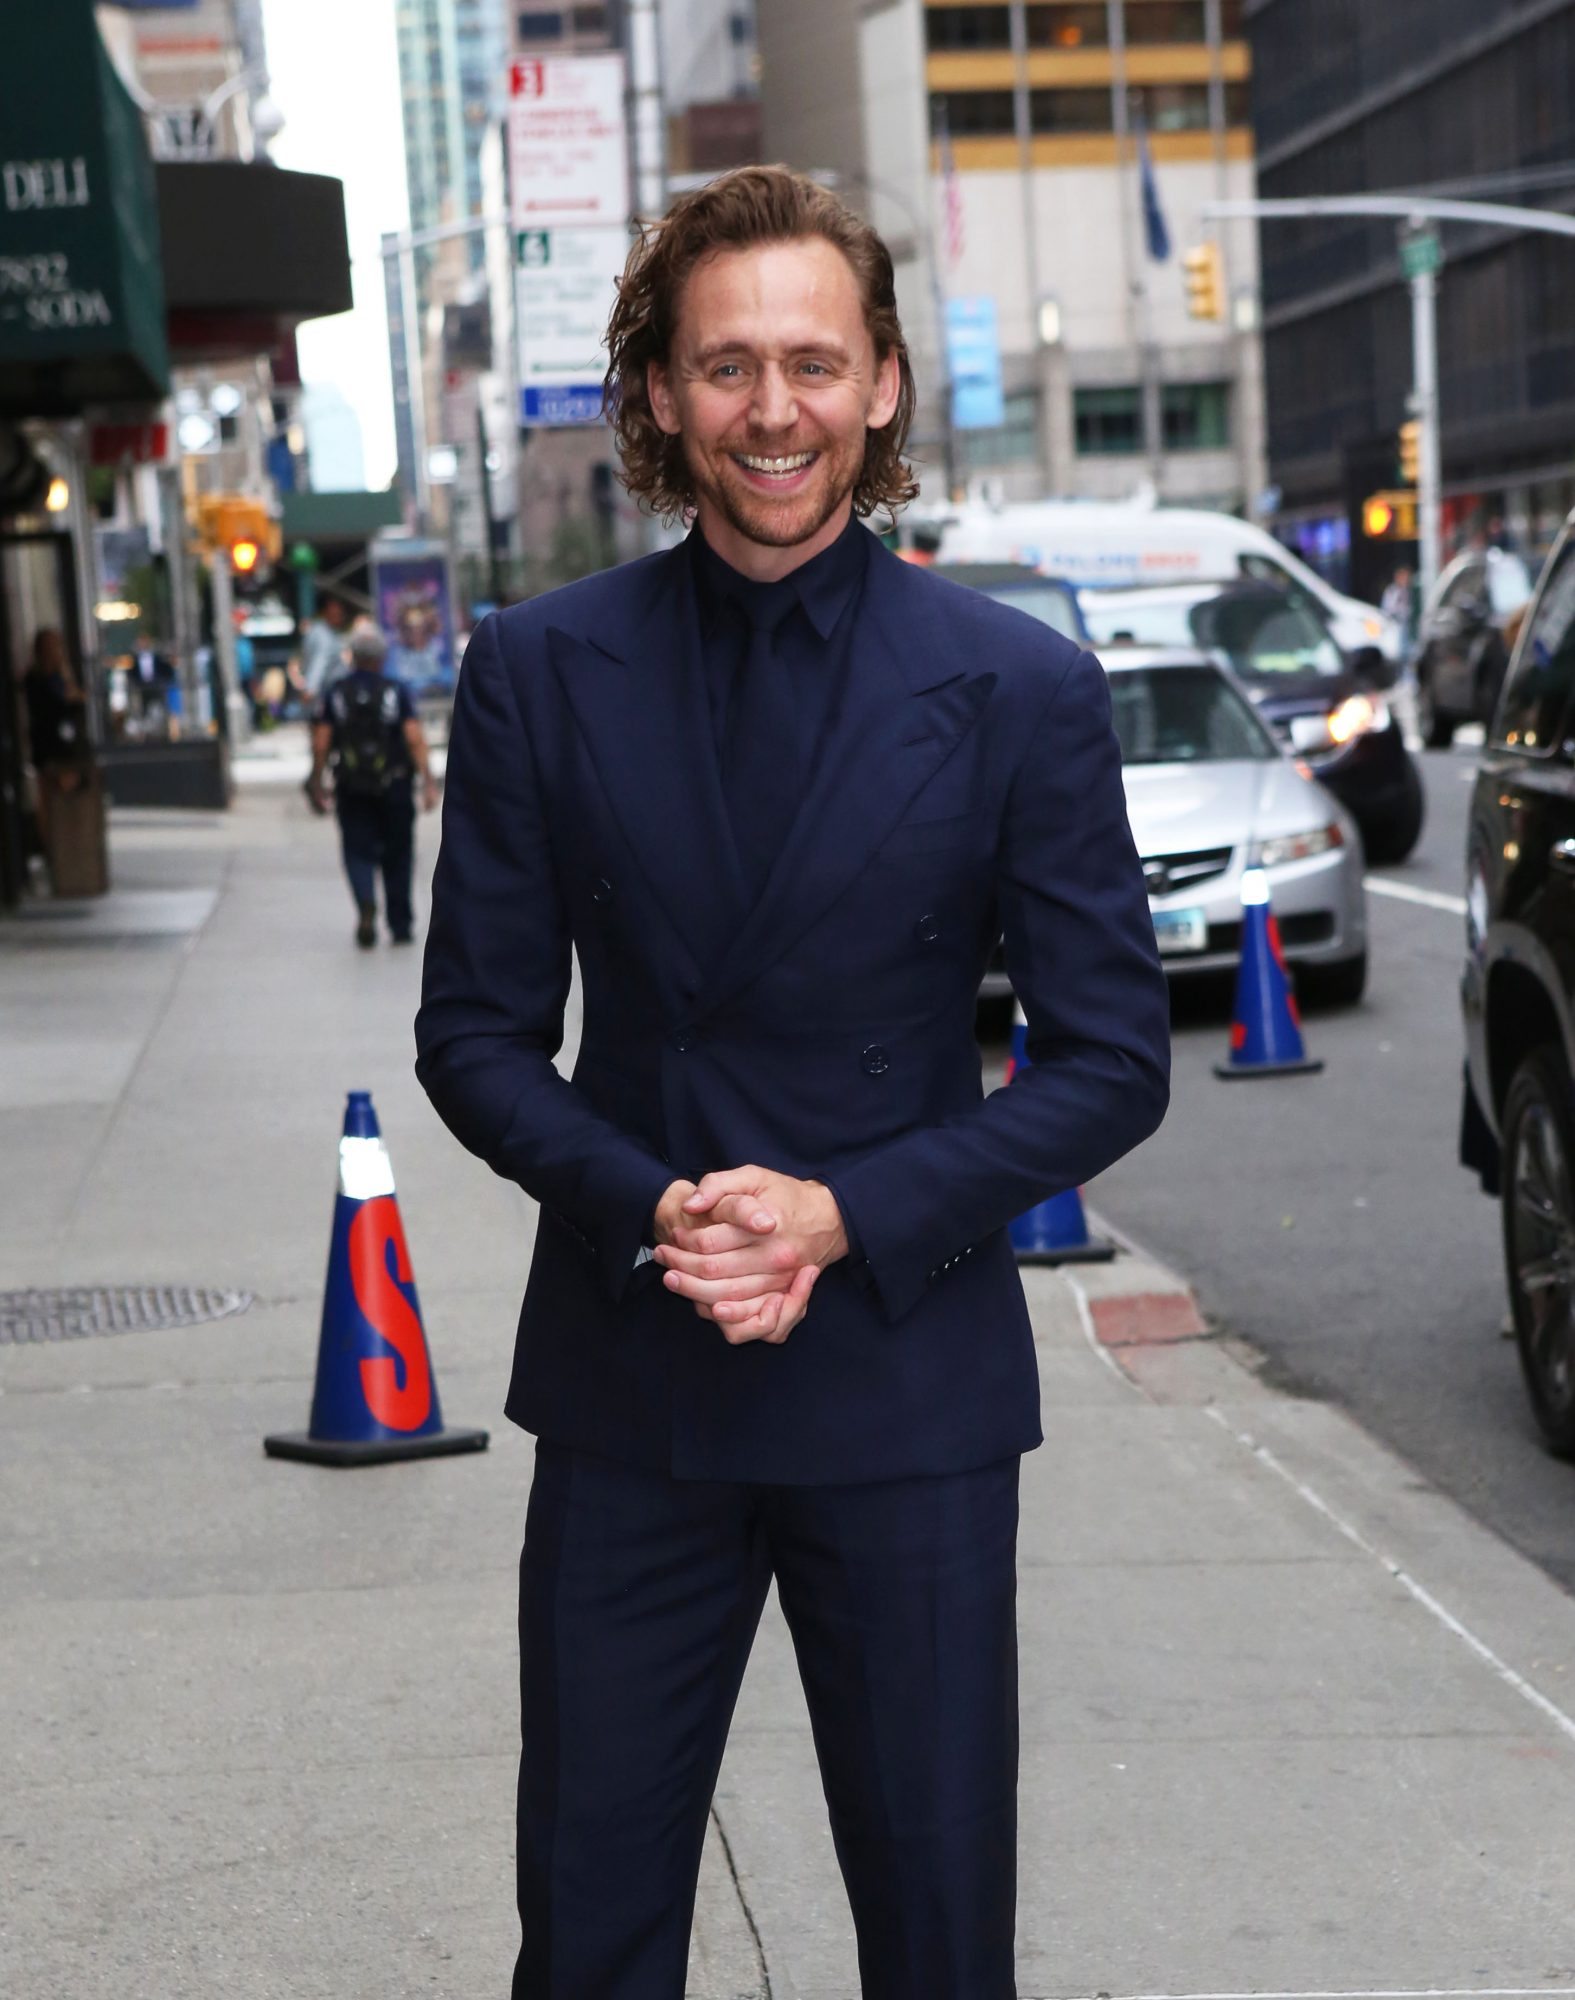 Tom Hiddleston Visits The Late Show With Stephen Colbert In NYC